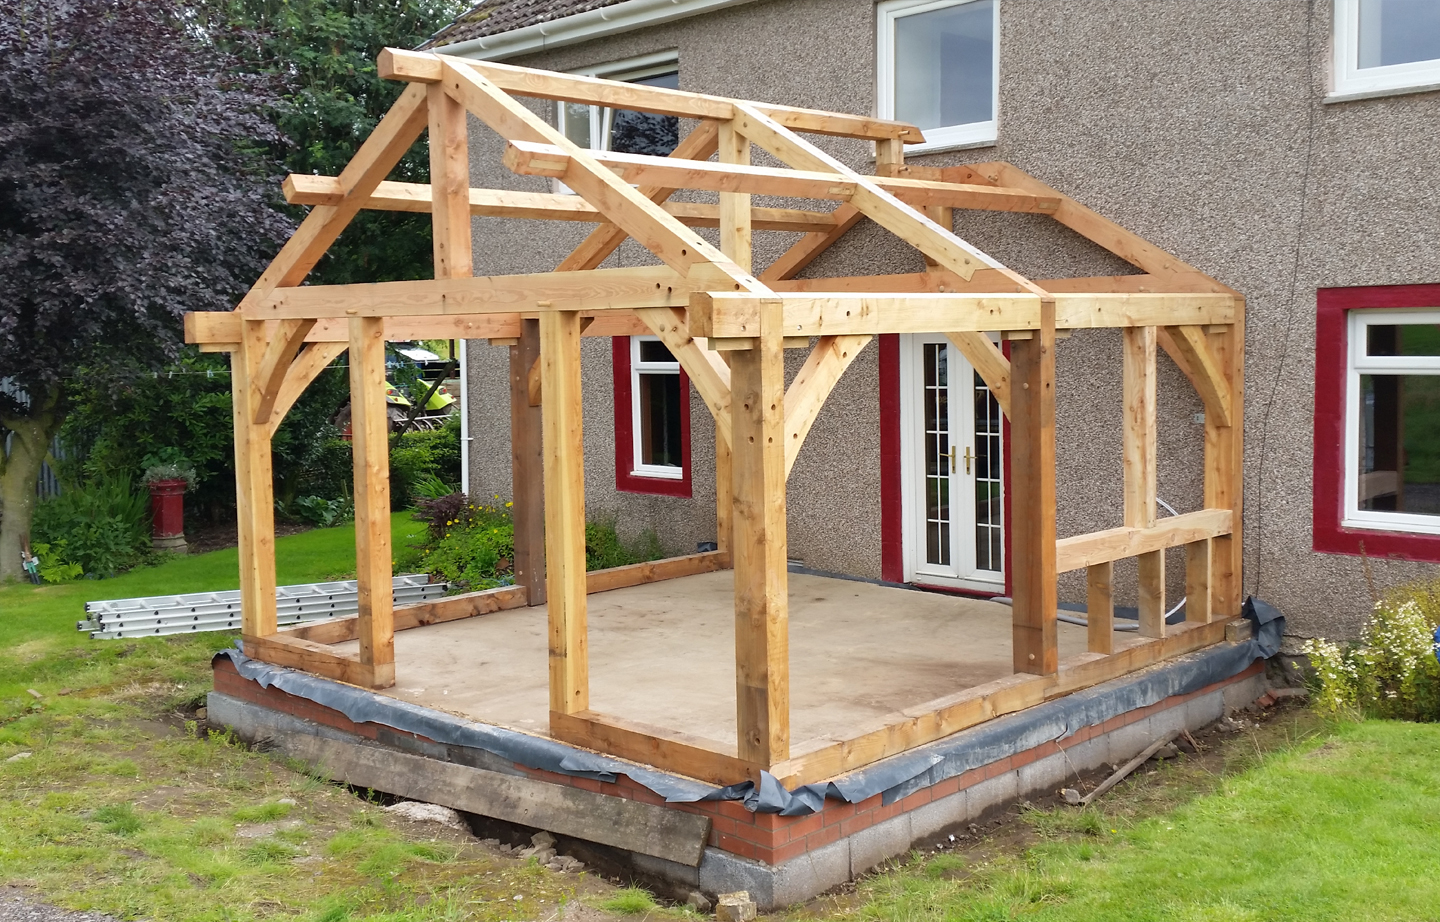 Farmers timber frame joinery scotland larch construction extension